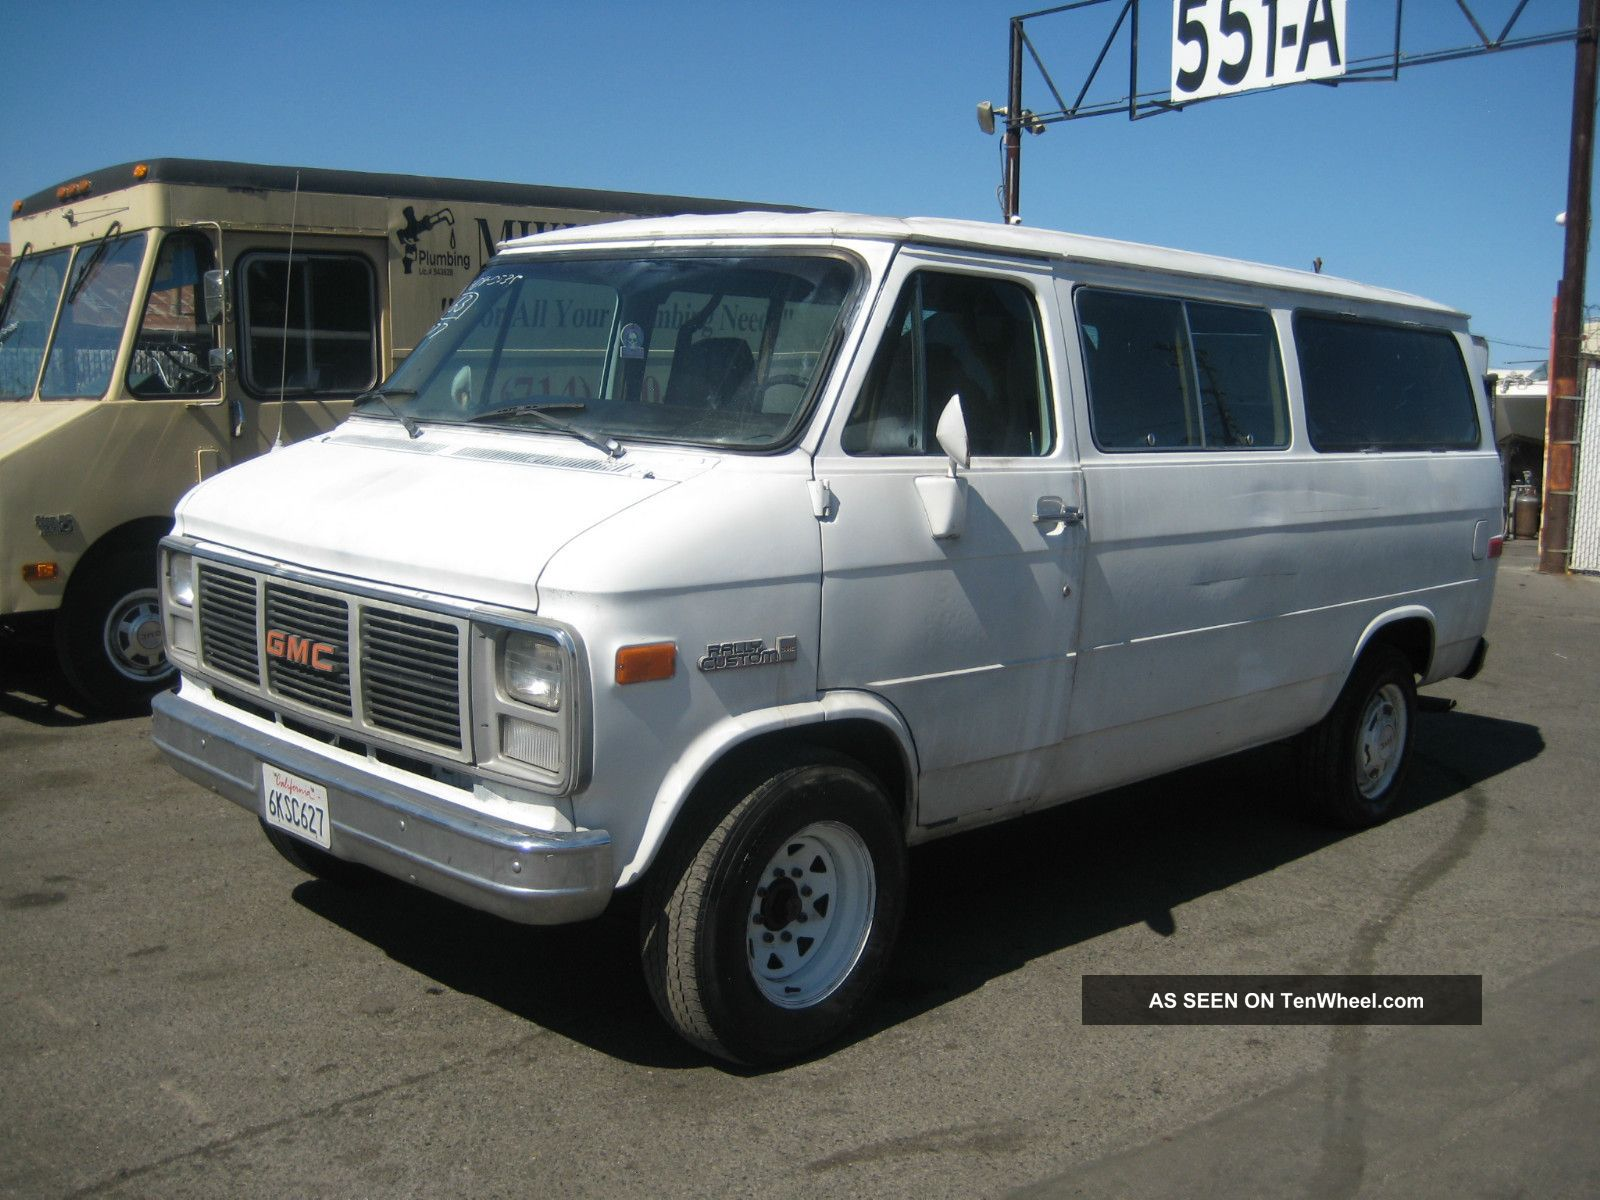 Gmc rally van